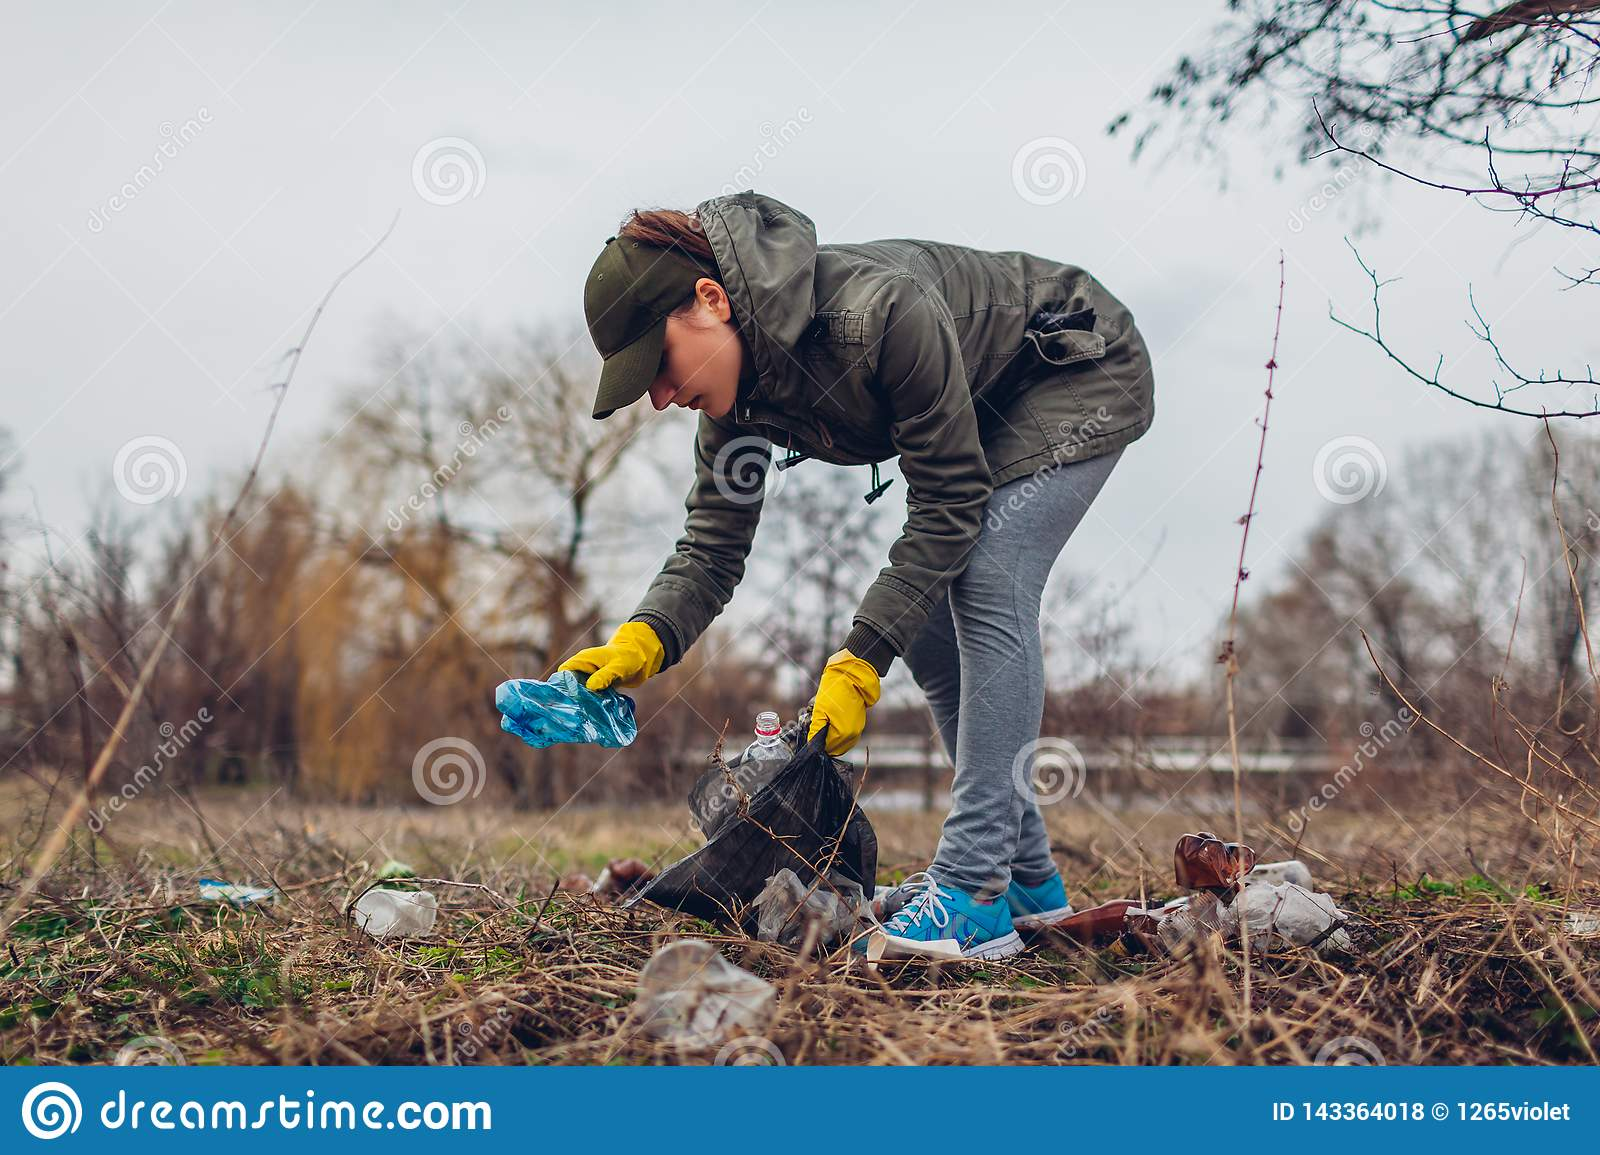 Woman Volunteer Cleaning Up The Trash In Park  Picking Up Litter